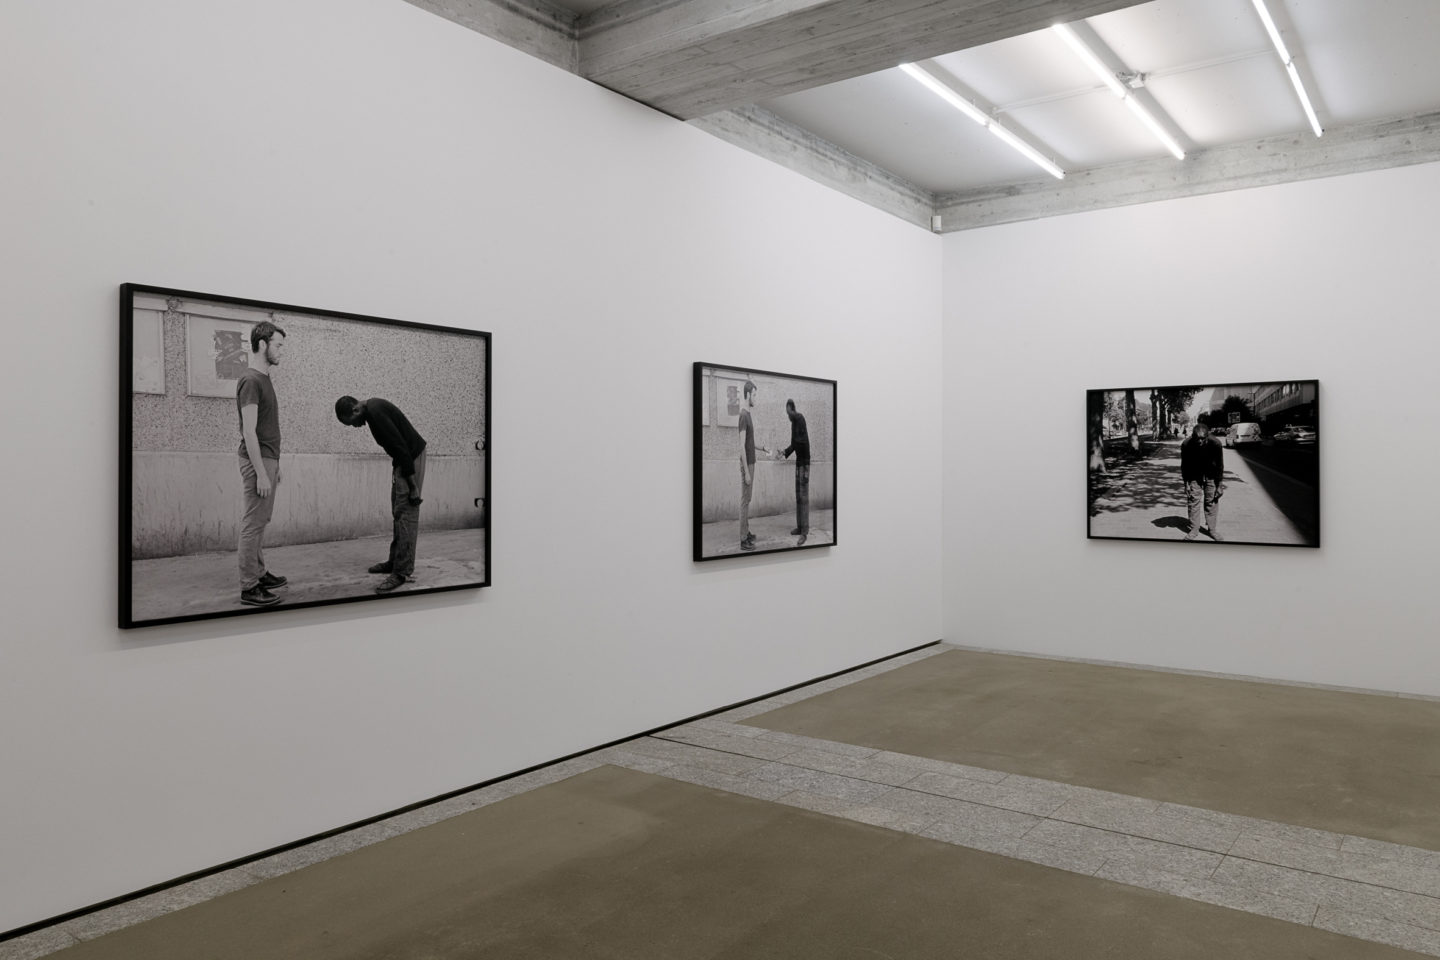 Exhibition View Groupshow «The Humans; view on Artur Zmijewski, In Between, 2018» / Photo: Sebastian Stalder / Courtesy: the artist and Galerie Peter Kilchmann, Zürich